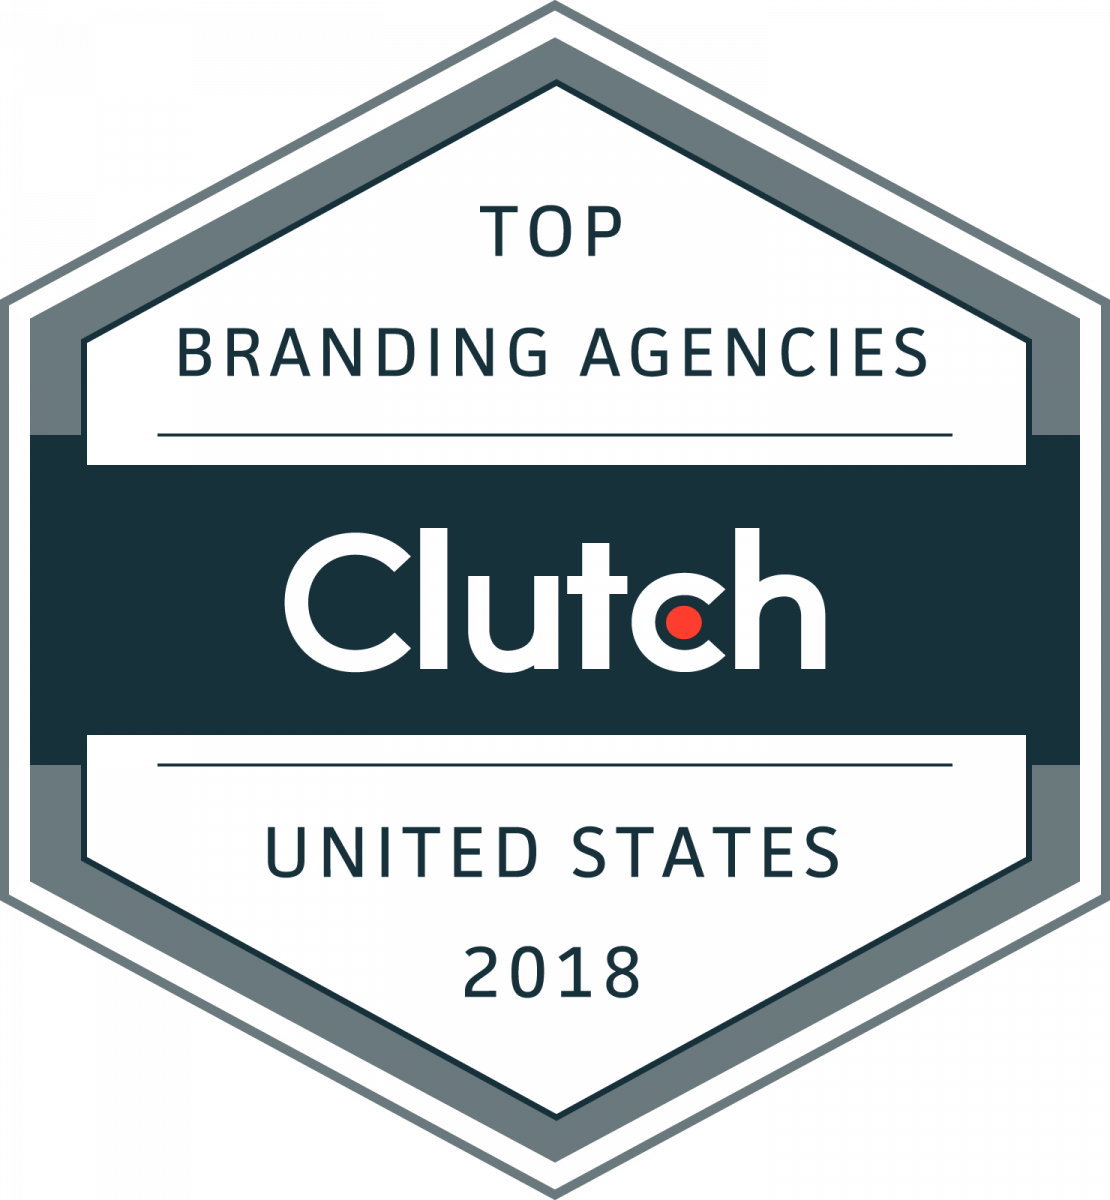 Davis Advertising Named as an Agency Leader in Branding